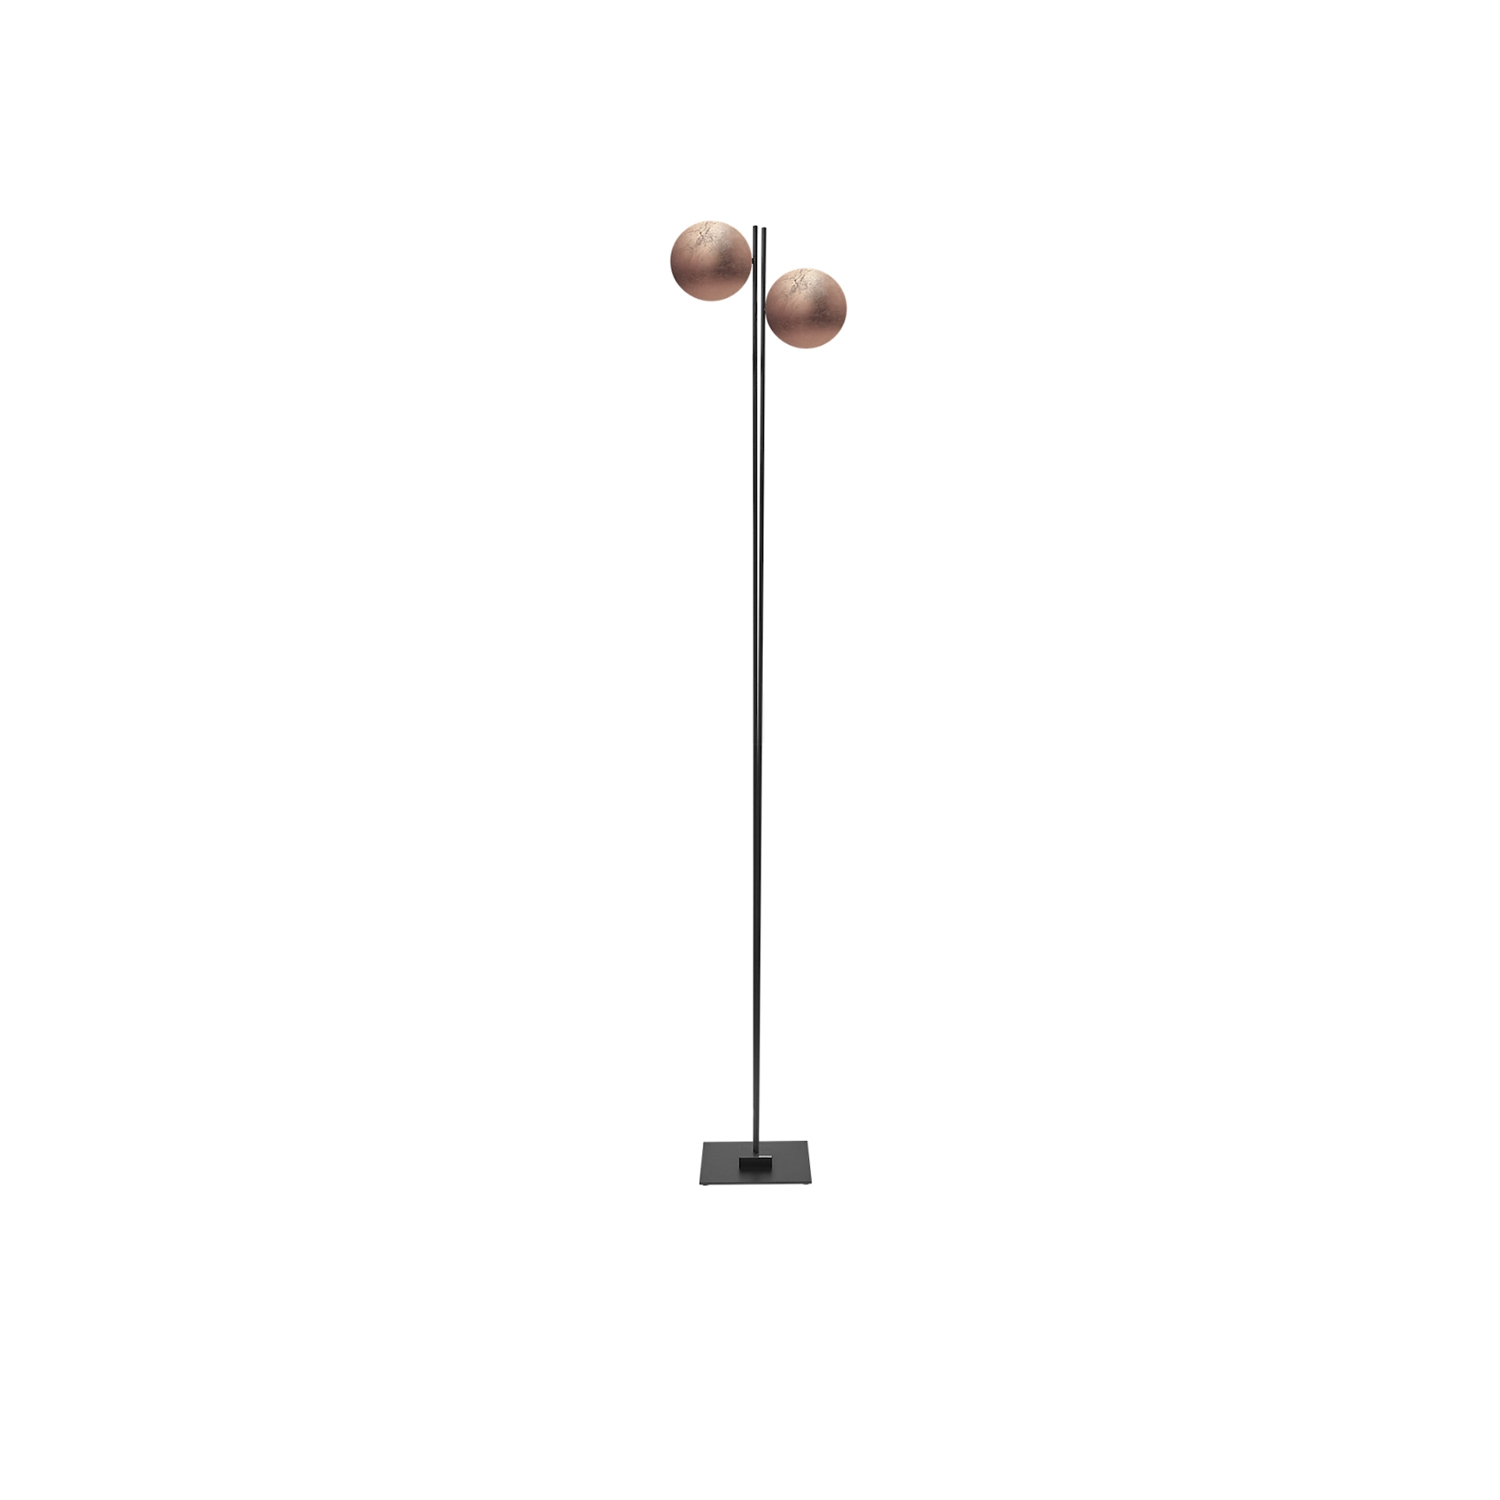 Lederam F2 Floor Lamp - Lederam embodies the accuracy of the motion required to draw a line. The warm, softly coloured disks surround a LED module with an ultra-flat shape, which creates thin lamps and suspended forms with curved, sinuous lines. | Matter of Stuff